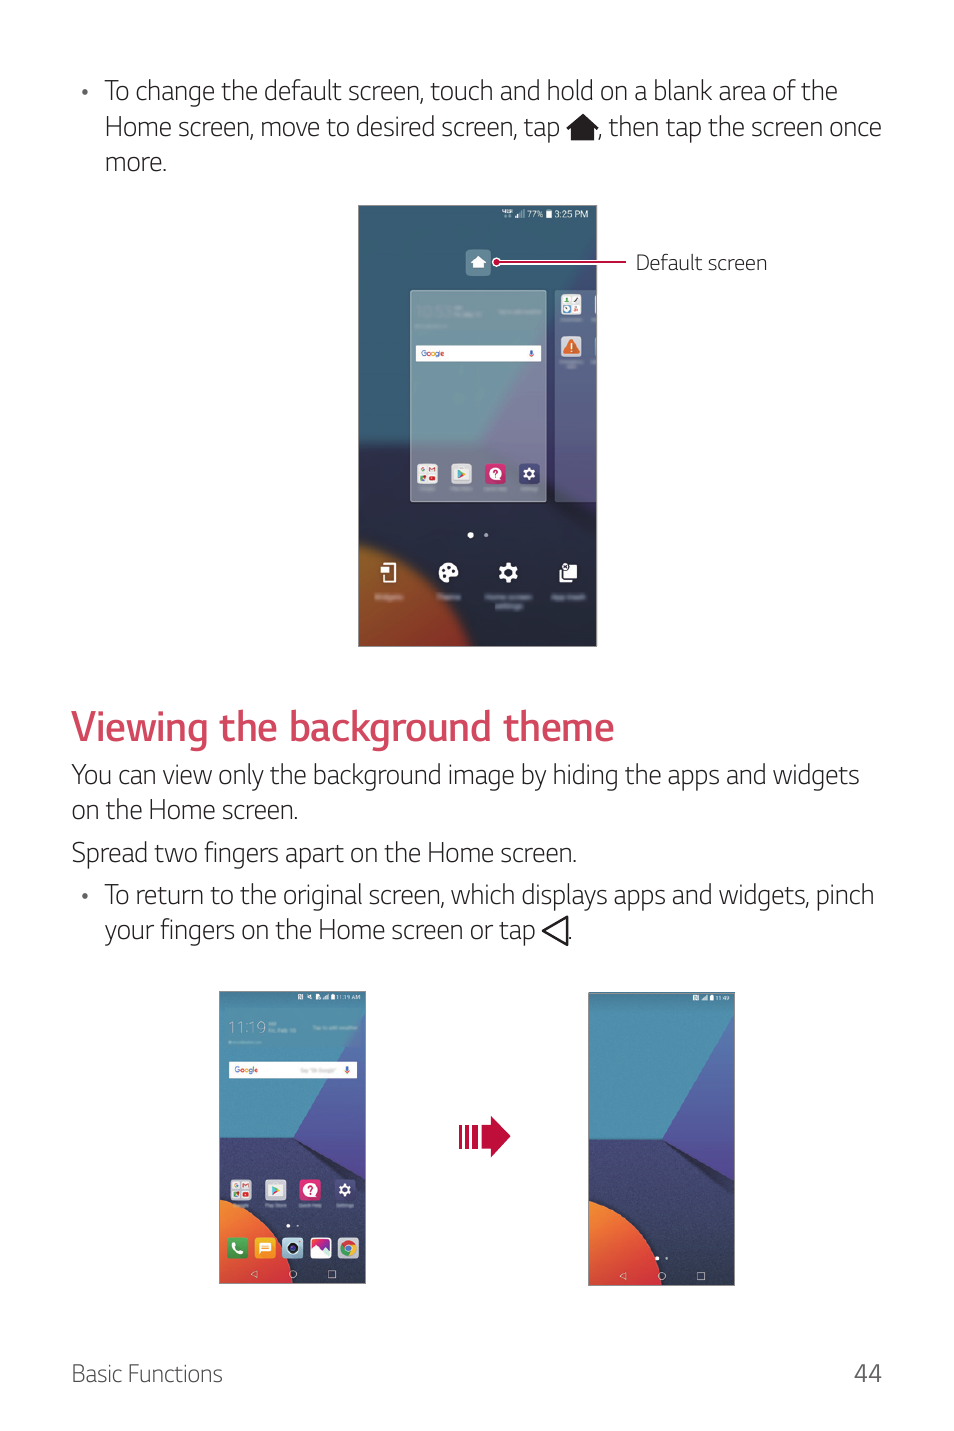 Viewing the background theme | LG G6 H872 User Manual | Page